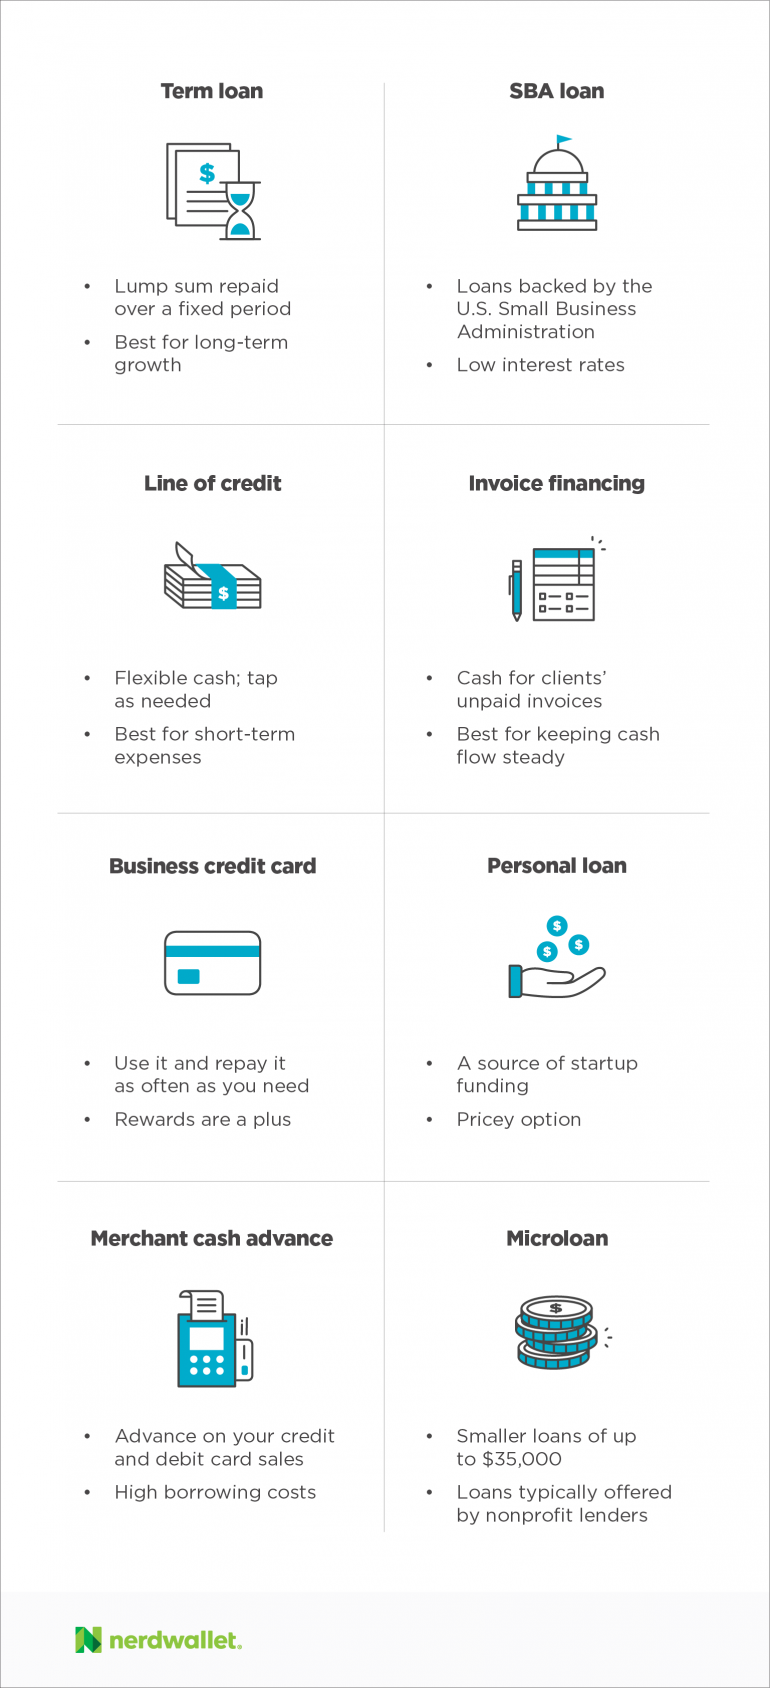 How to Get a Small Business Loan in 5 Steps - NerdWallet